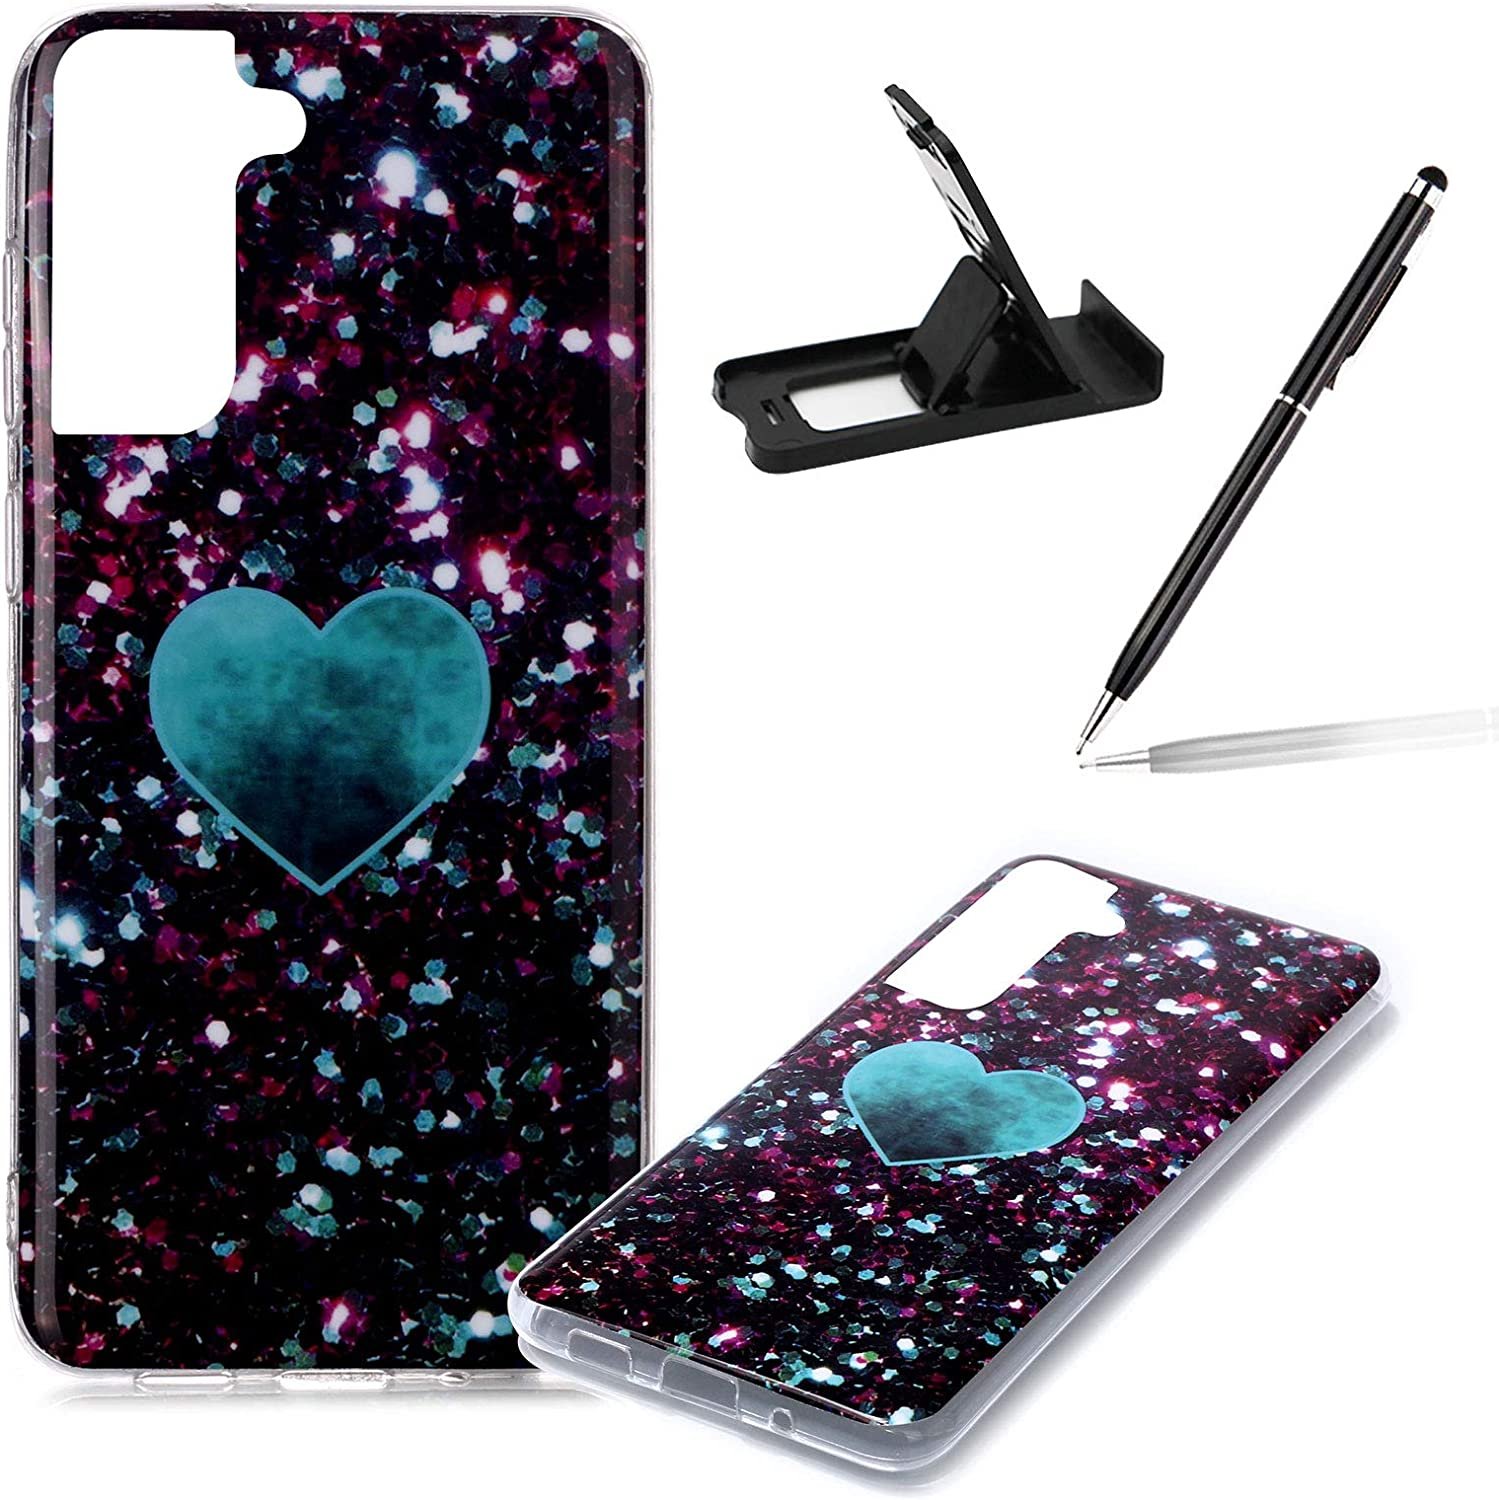 Herzzer Marble Cellphone Case for S21 5G Samsung Stylish Galaxy Ranking TOP6 Price reduction